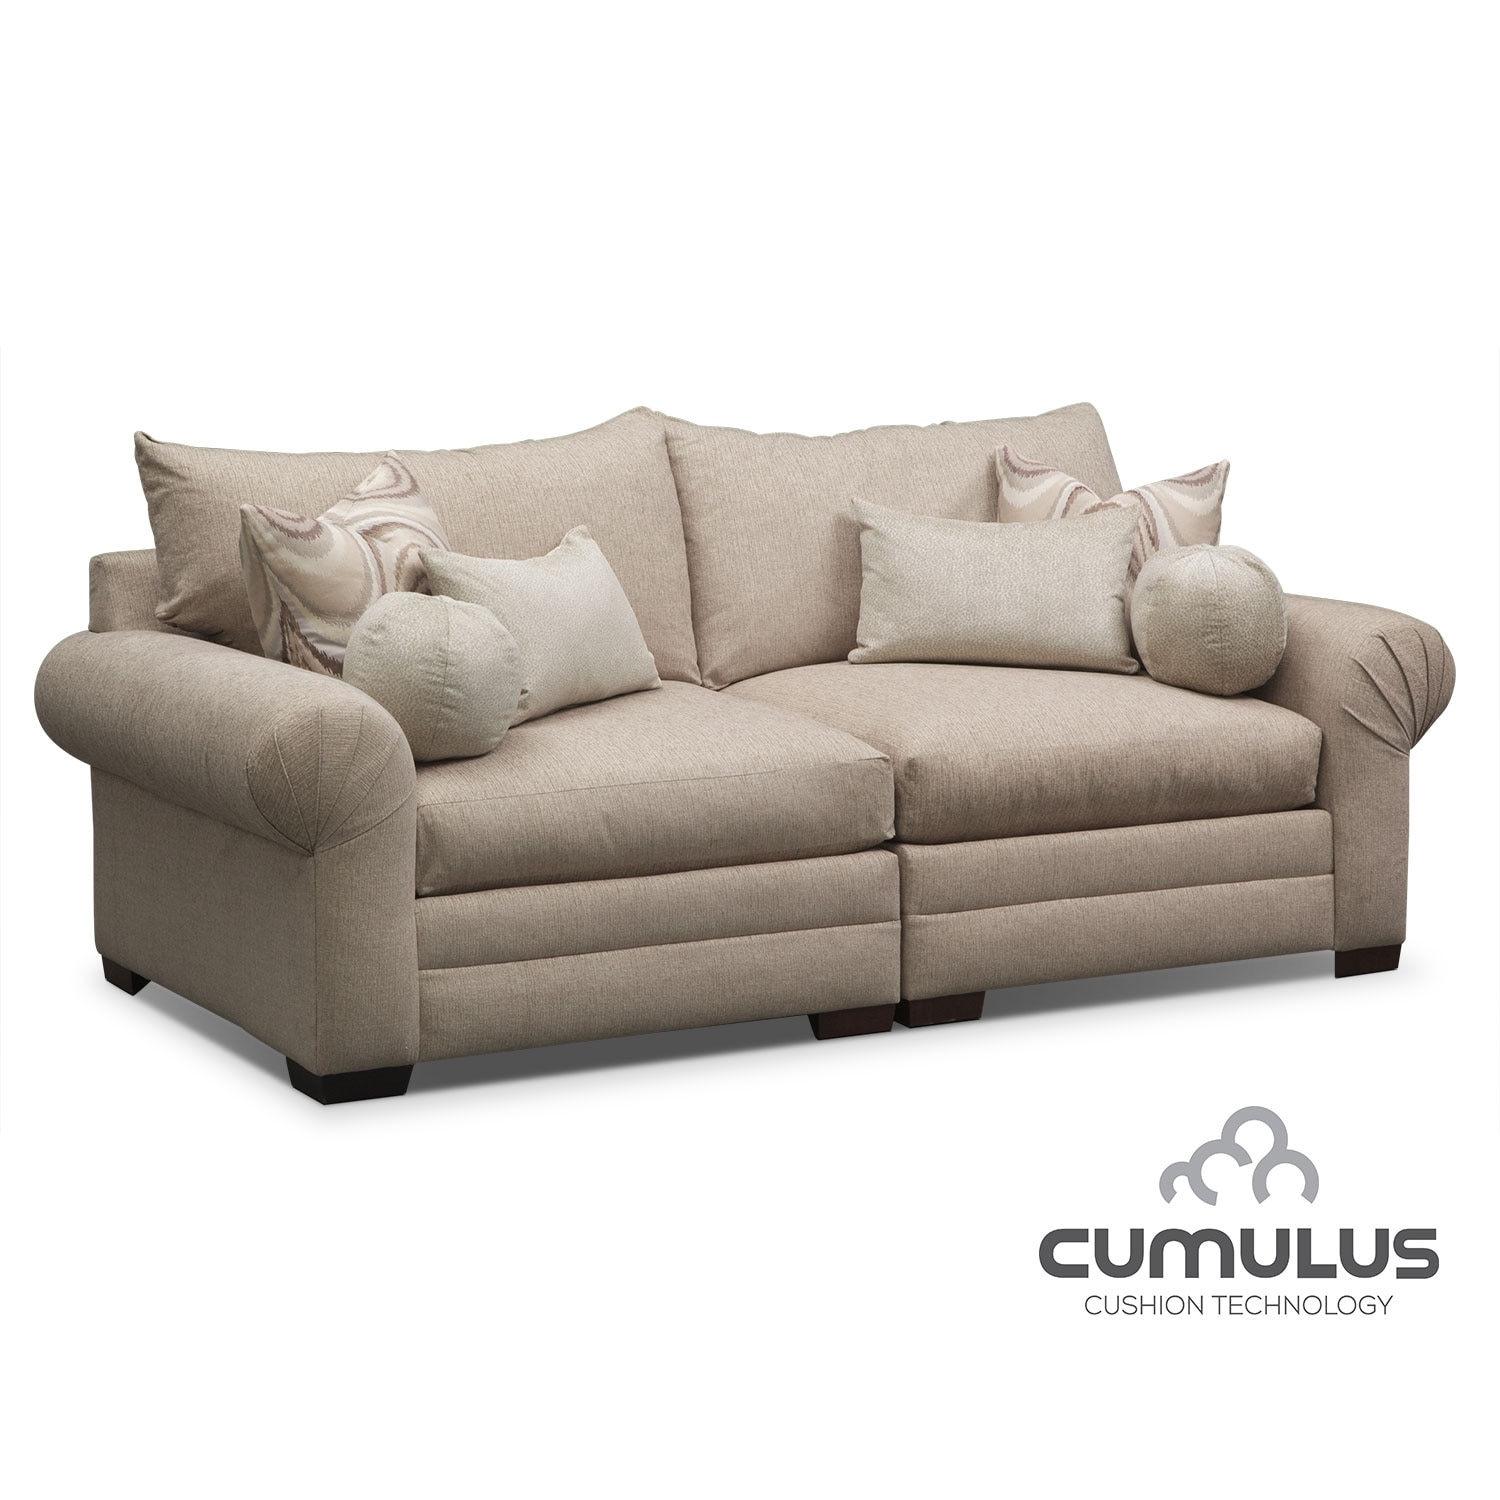 Living Room Furniture - Wilshire Sofa - Cream